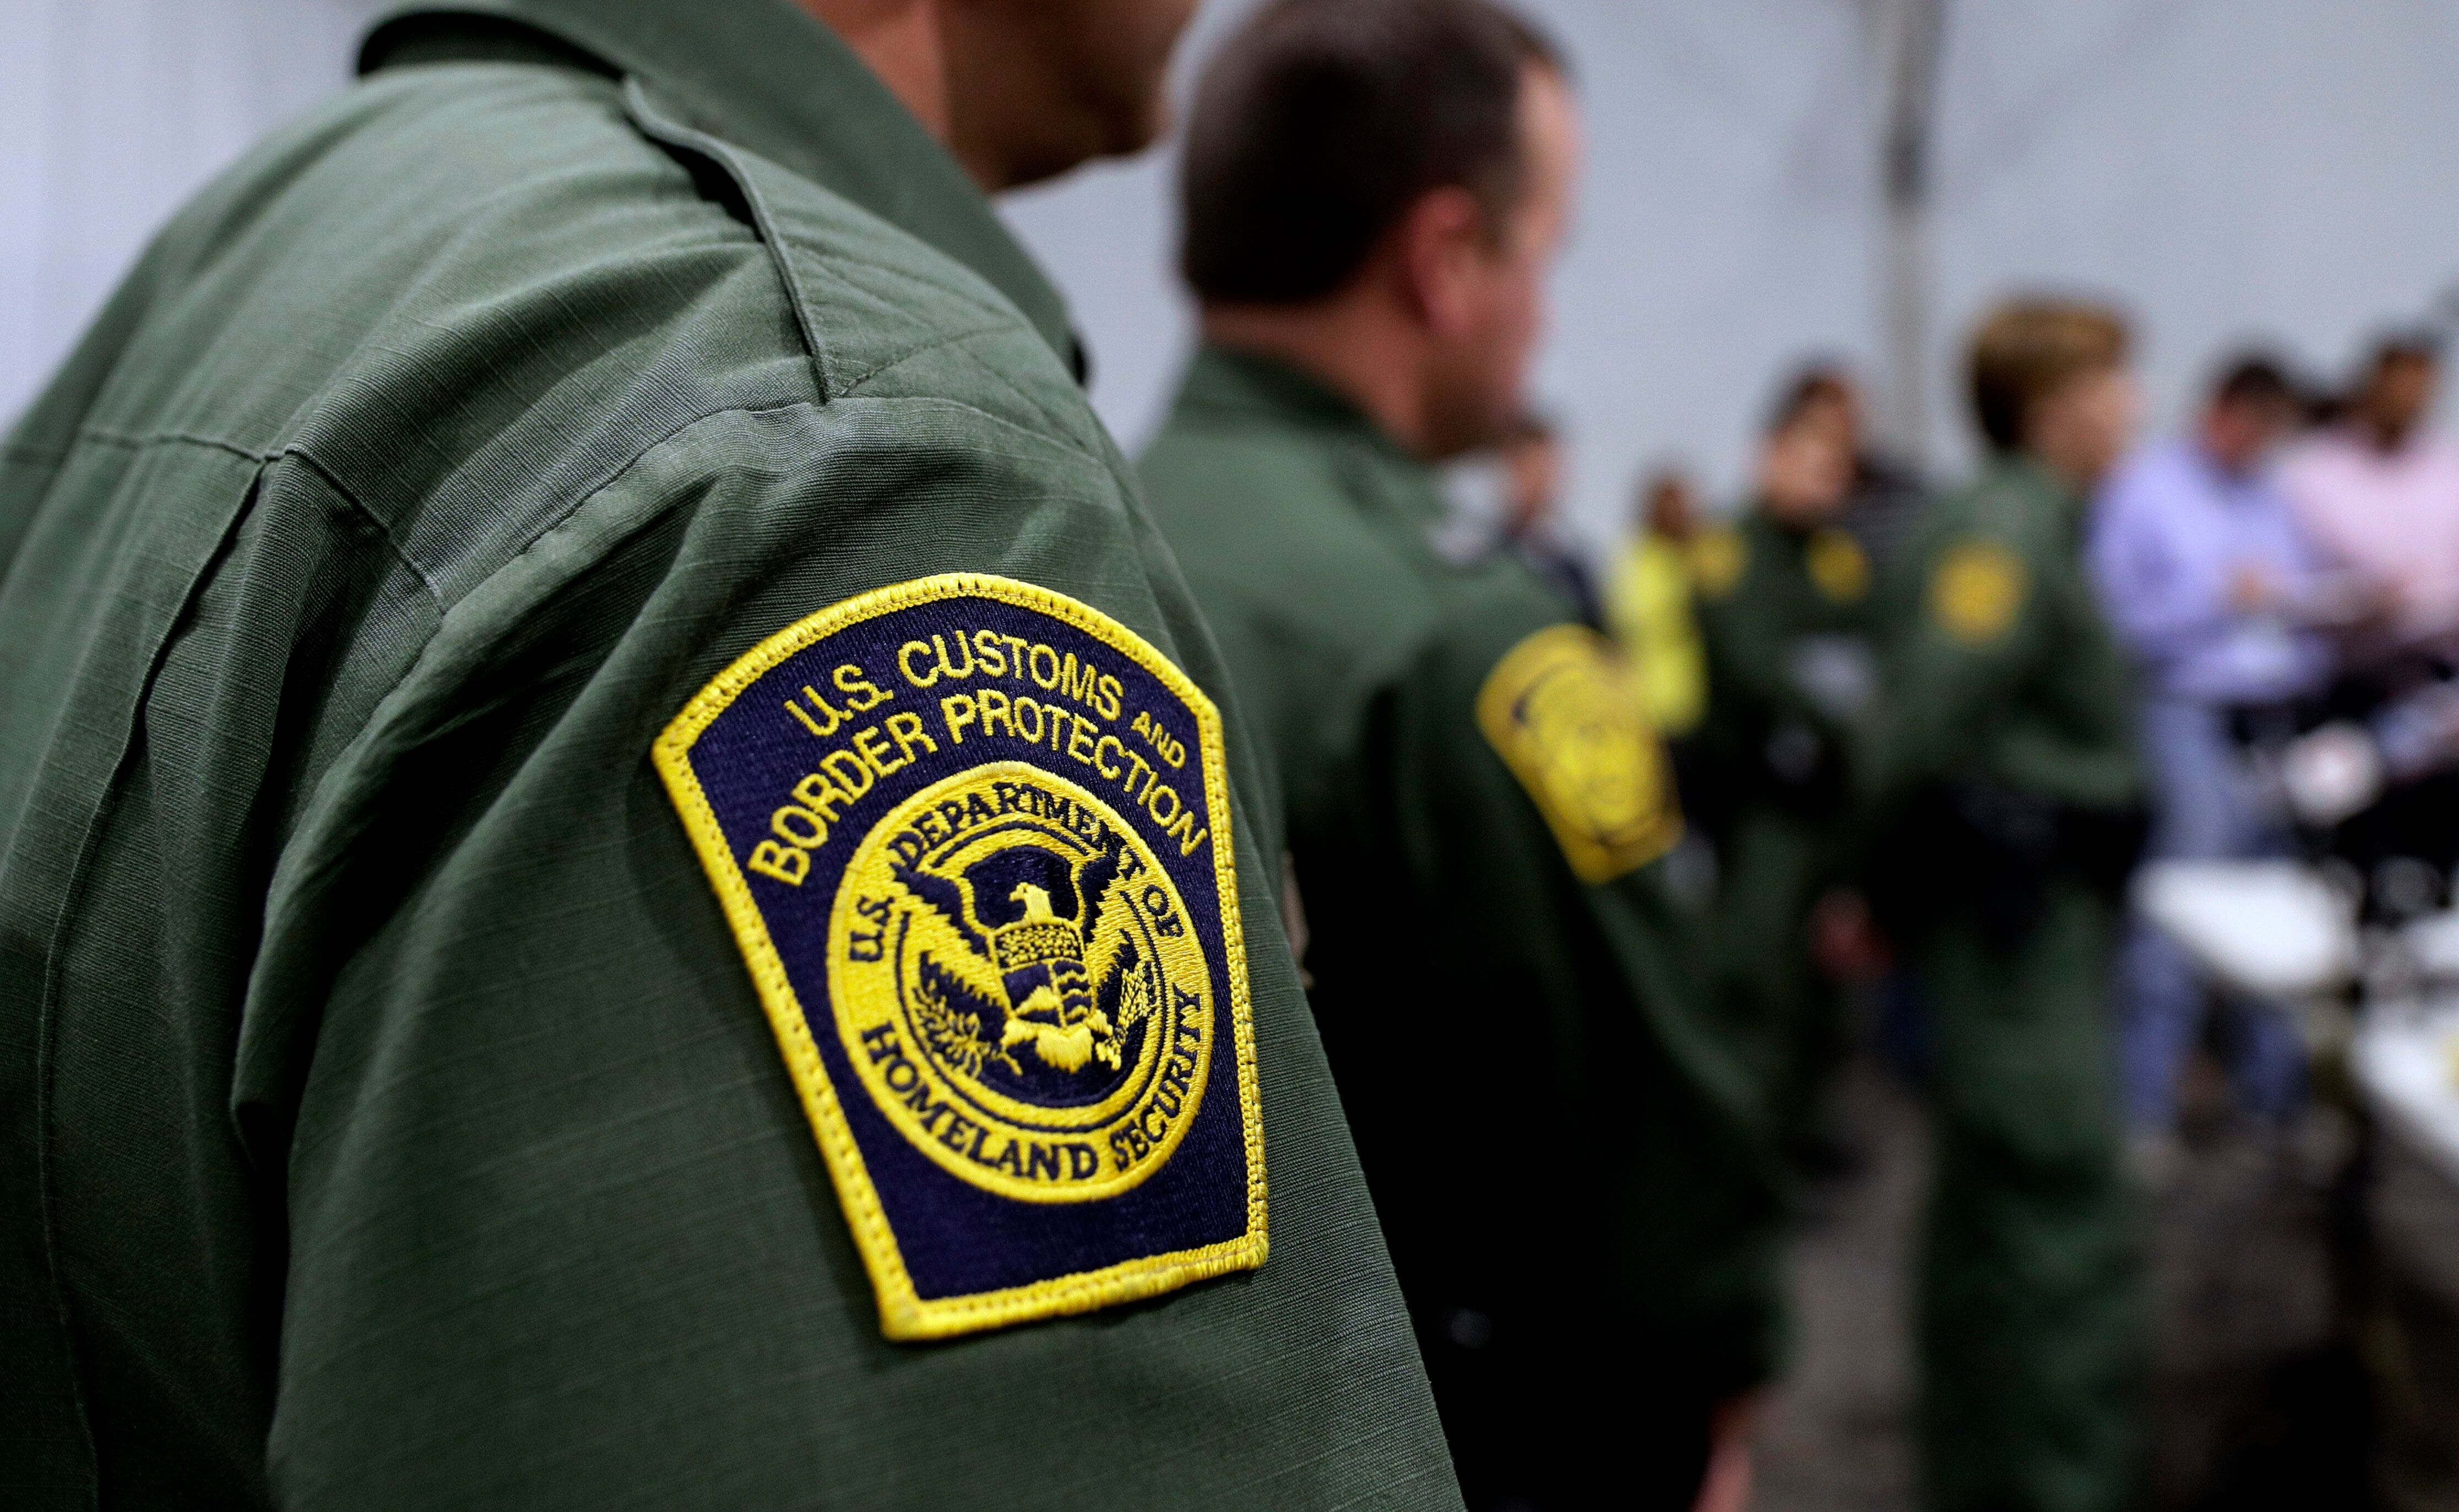 Border Patrol agents hold a news conference prior to a media tour of a new U.S. Customs and Border Protection temporary facility near the Donna International Bridge, Thursday, May 2, 2019, in Donna, Texas. Officials say the site will primarily be used as a temporary site for processing and care of unaccompanied migrant children and families and will increase the Border Patrol's capacity to process migrant families. (AP Photo/Eric Gay)